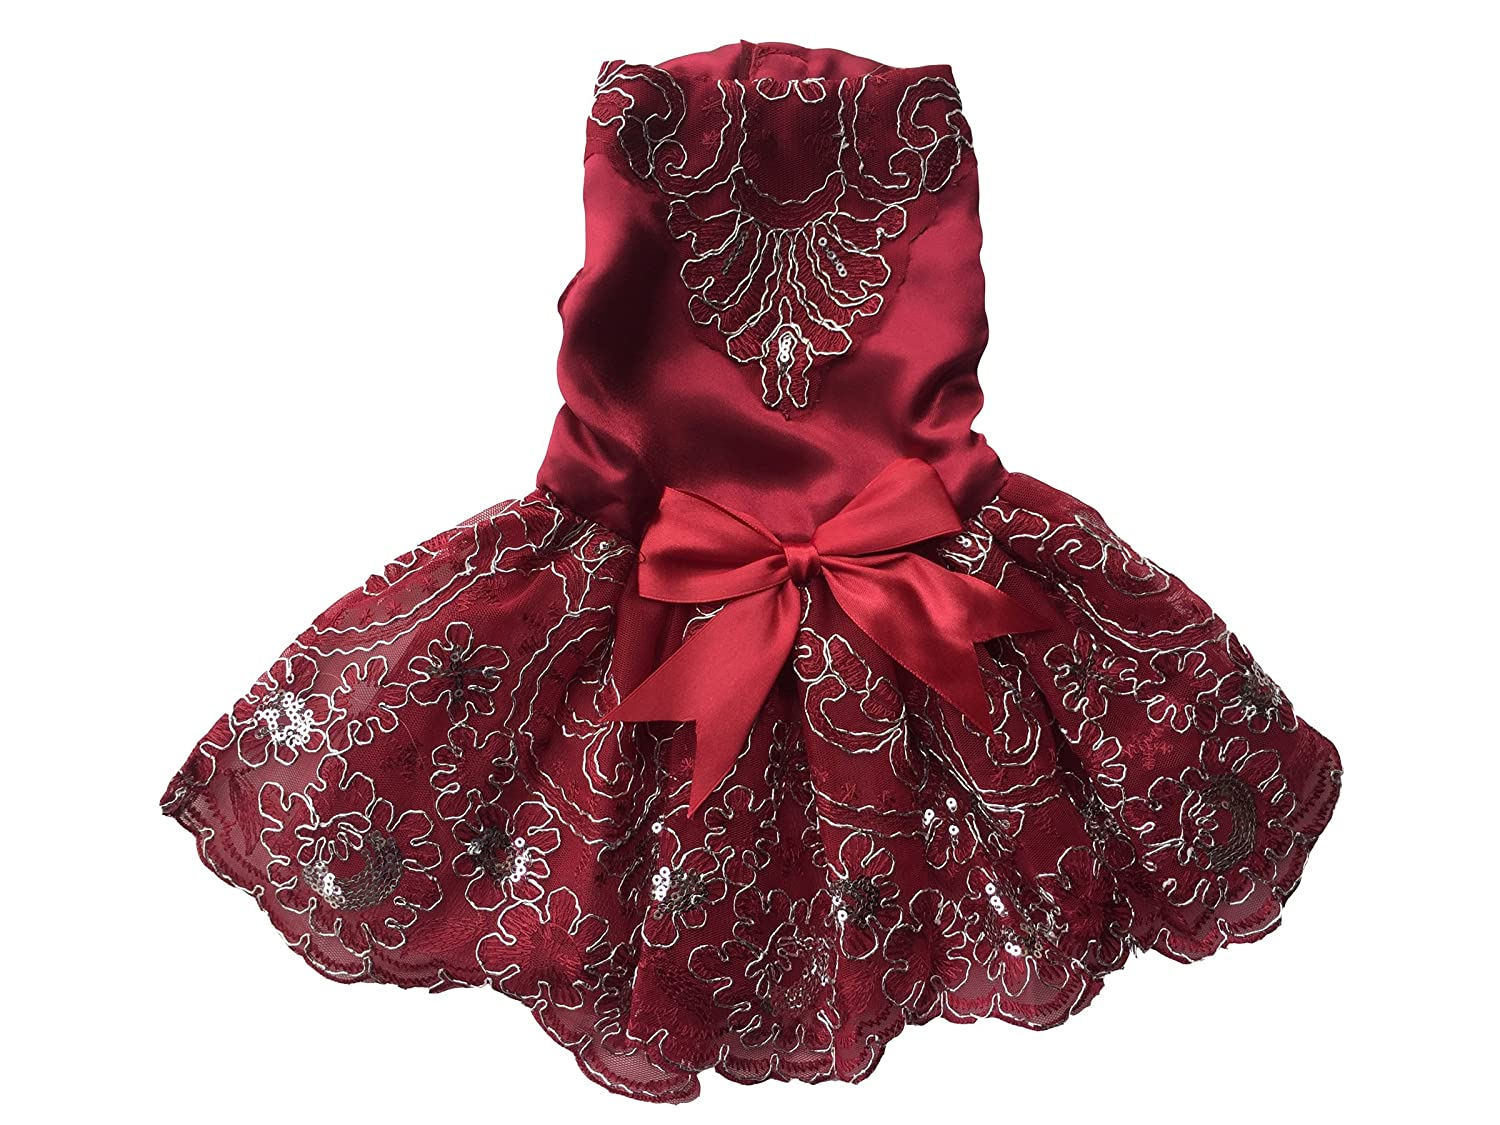 Burgundy S Burgundy S Vedem Pet Dog Floral Embroidered Lace Wedding Dress (S, Burgundy)